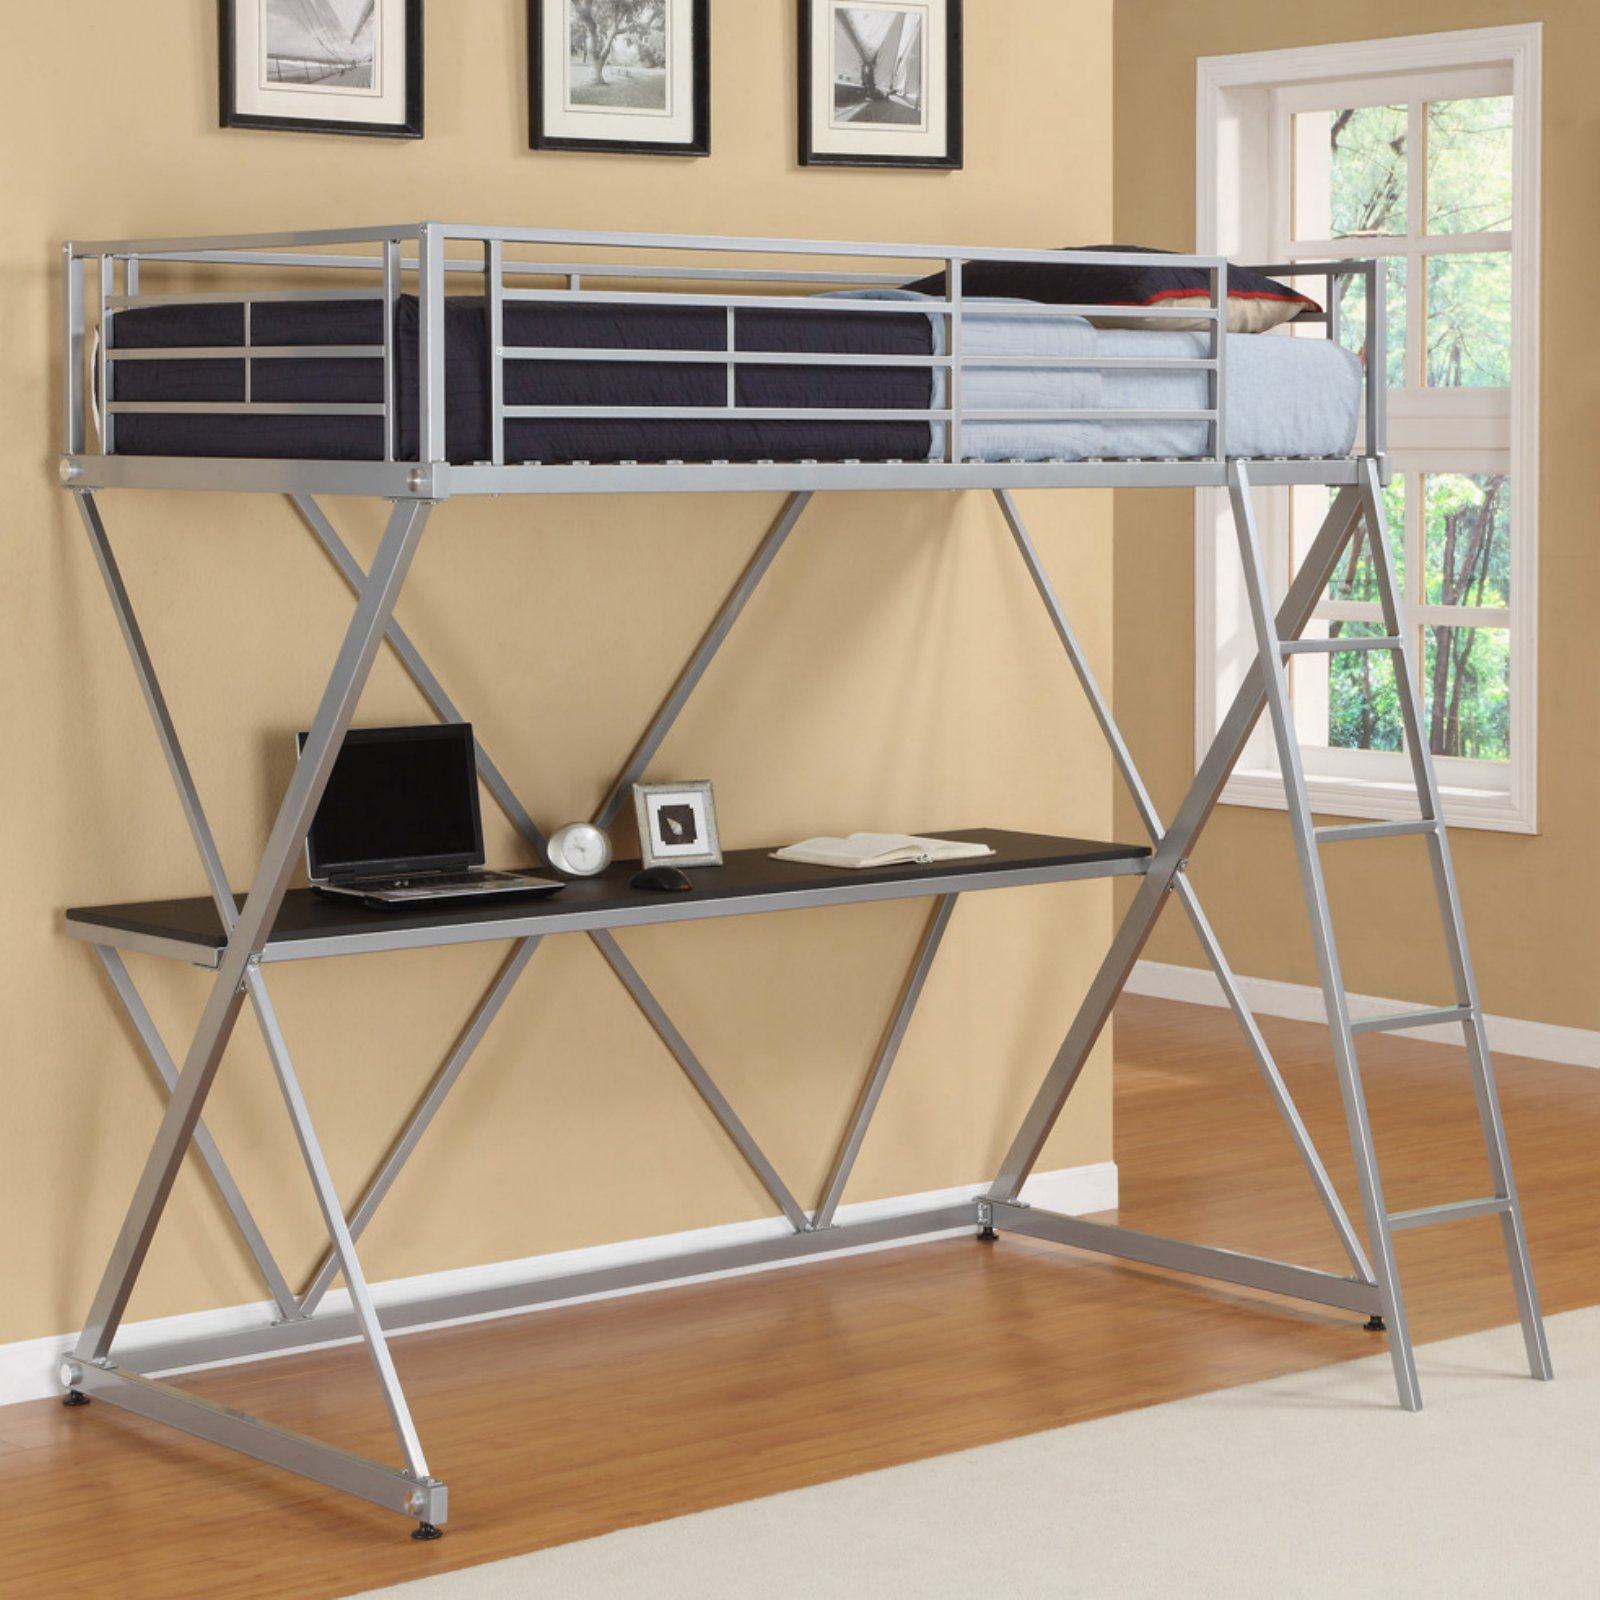 DHP Metal Loft Bed Over Desk Workstation Twin Size, Silver